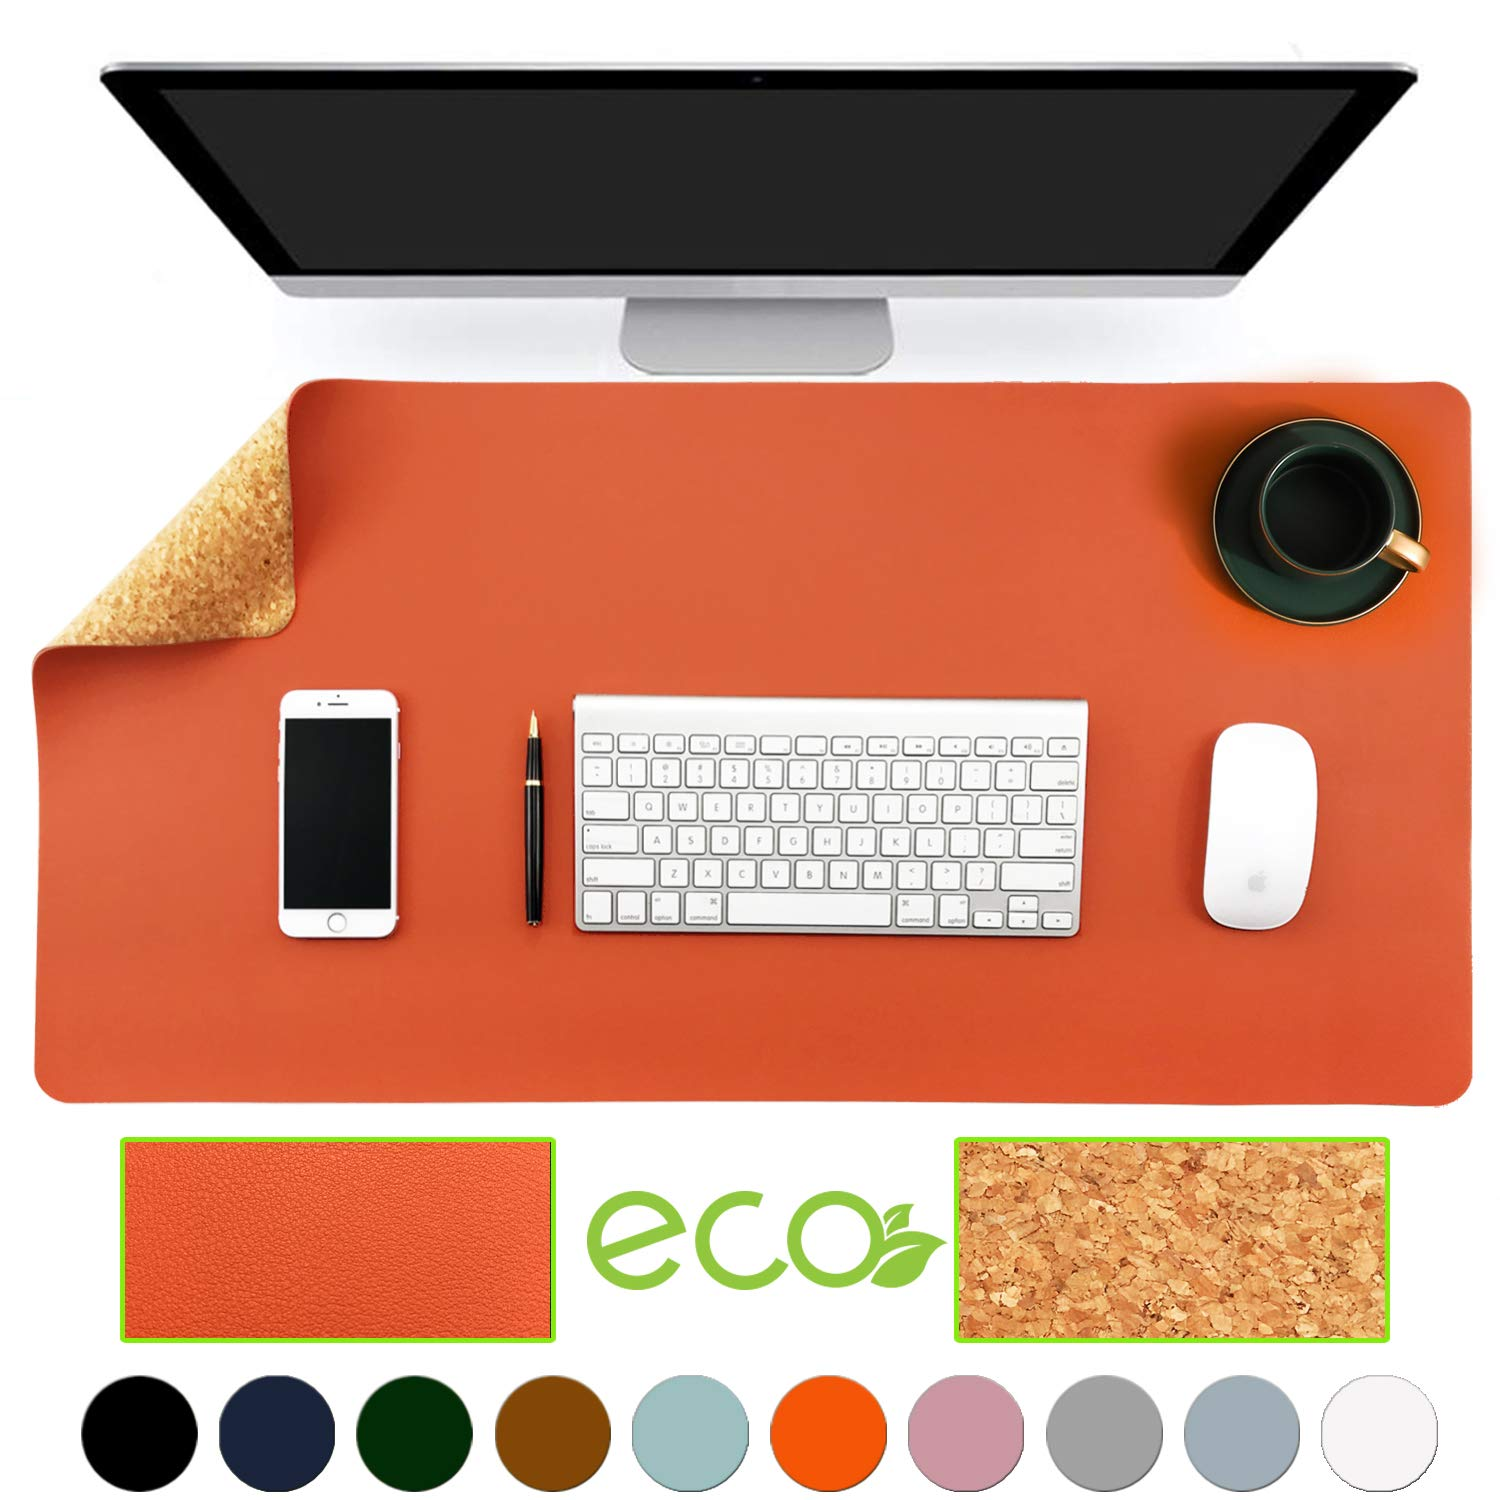 """Aothia Eco-Friendly Natural Cork & Leather Double-Sided Office Desk Mat Mouse Pad Smooth Surface Soft Easy Clean Waterproof PU Leather Desk Protector for Office/Home Gaming (Orange,31.5"""" x 15.7"""")"""